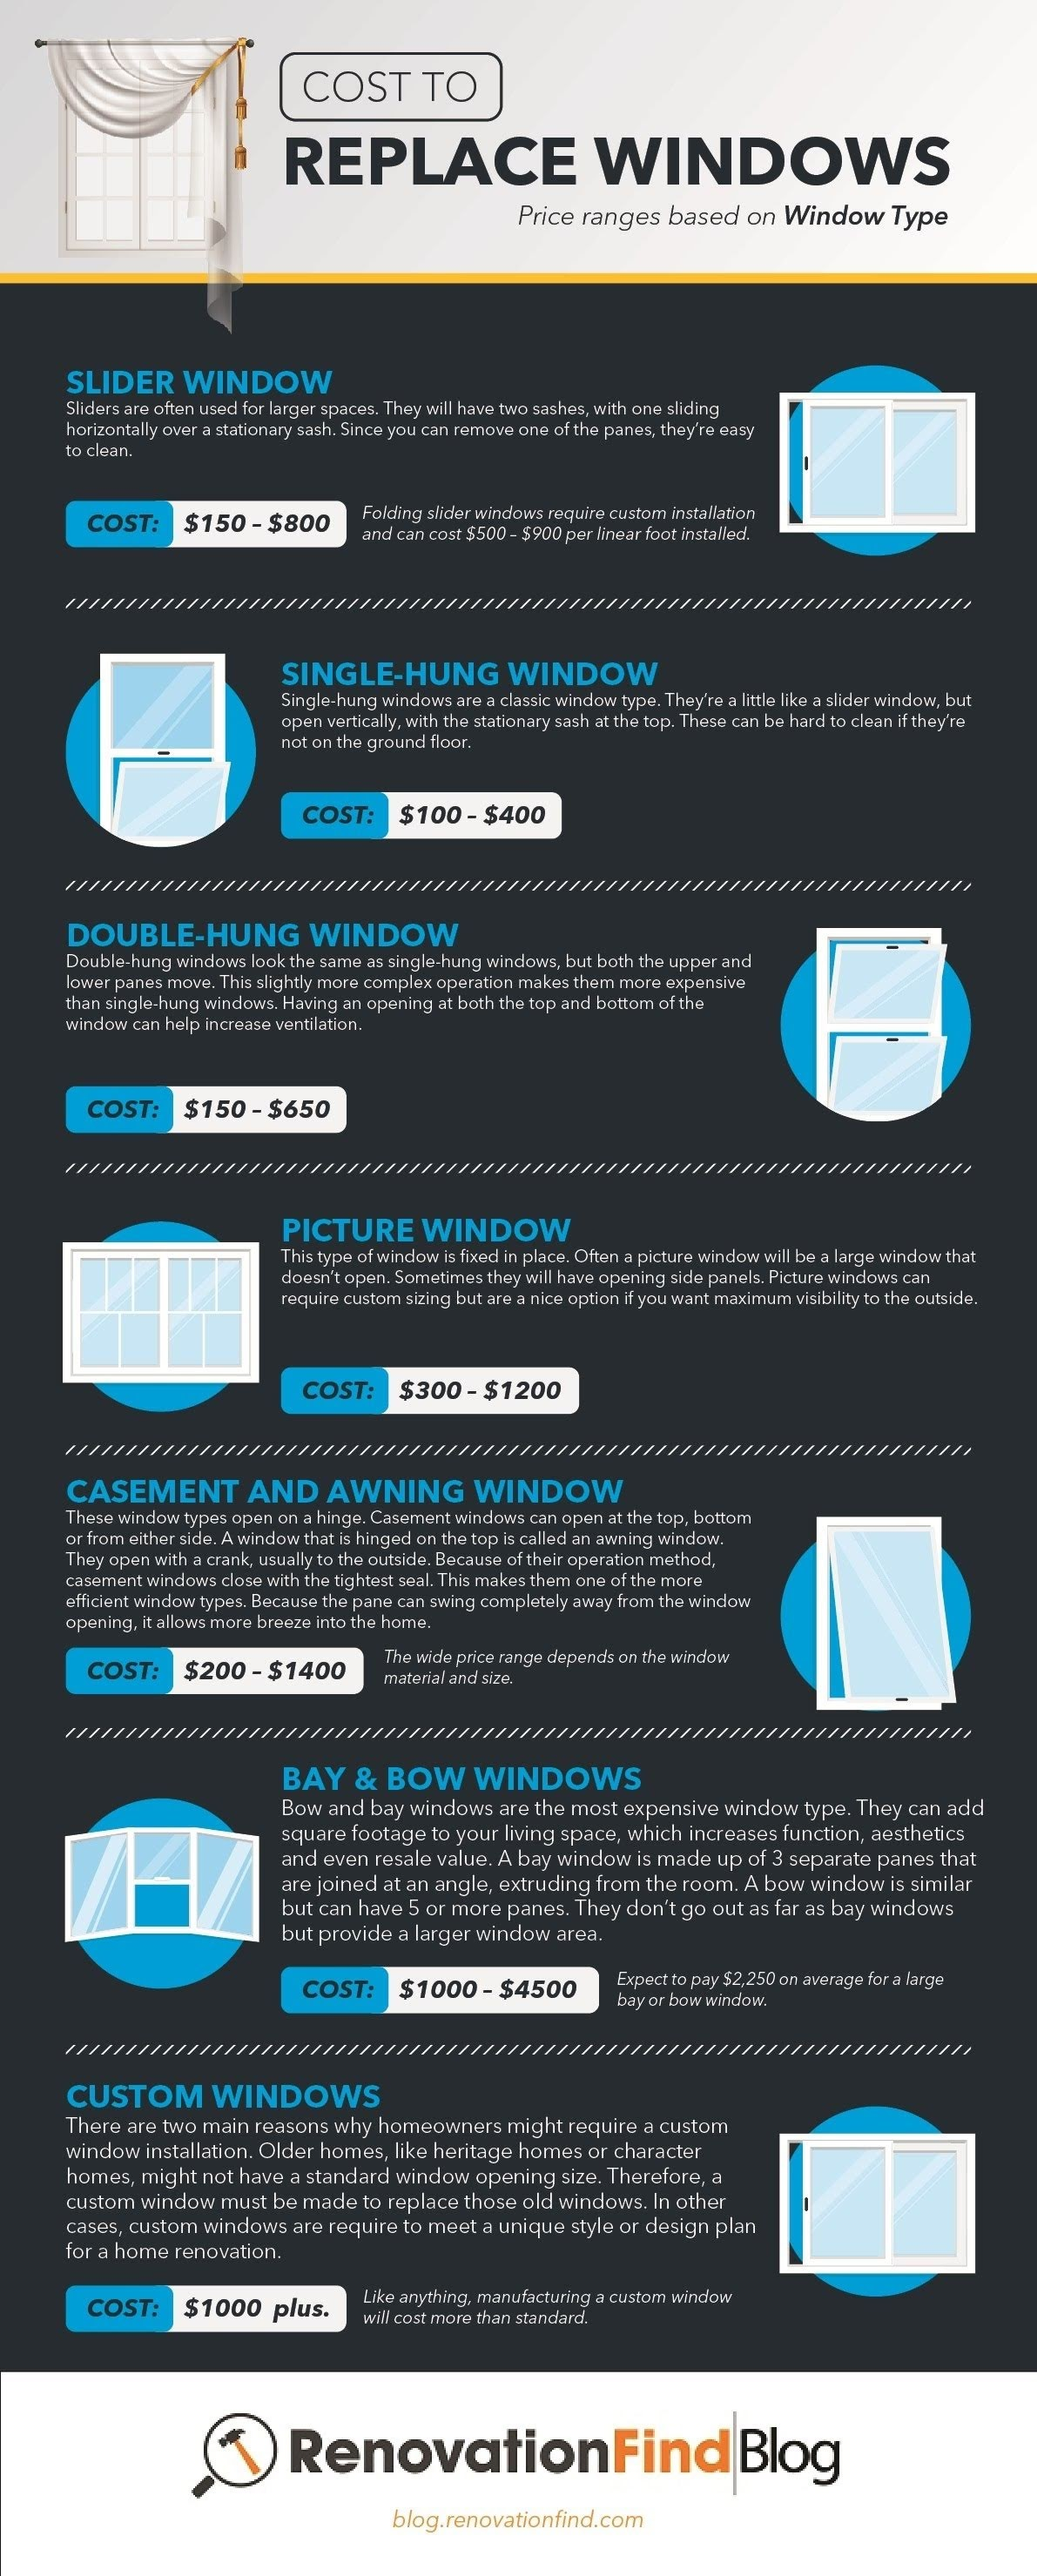 The cost of replacing Windows is how large? #infographic